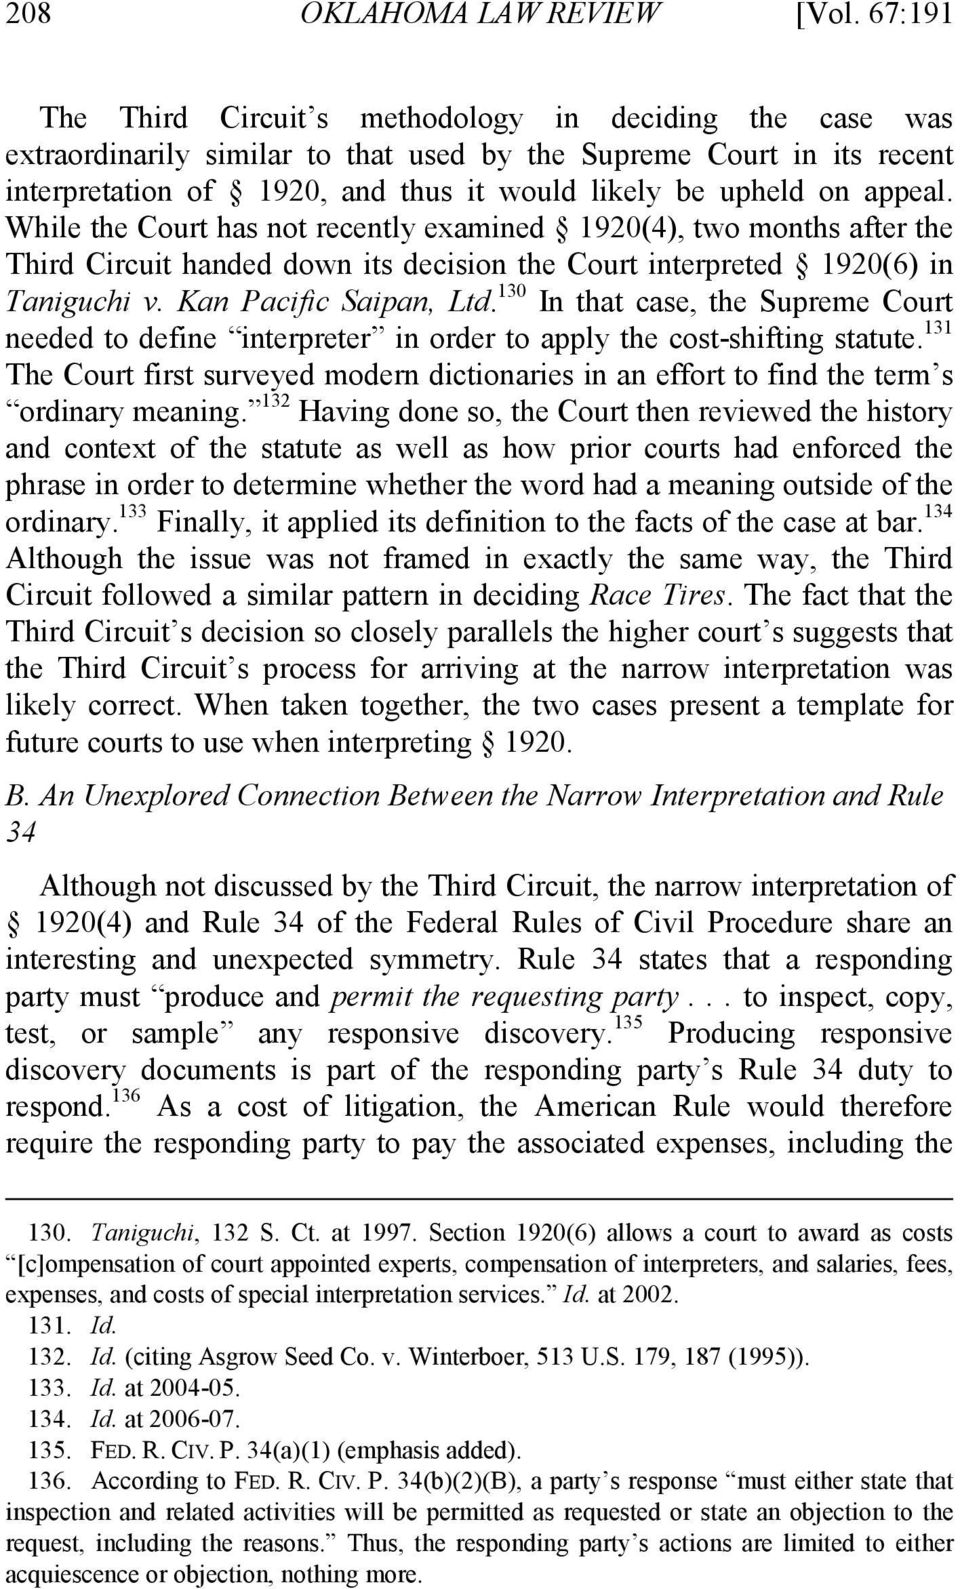 appeal. While the Court has not recently examined 1920(4), two months after the Third Circuit handed down its decision the Court interpreted 1920(6) in Taniguchi v. Kan Pacific Saipan, Ltd.